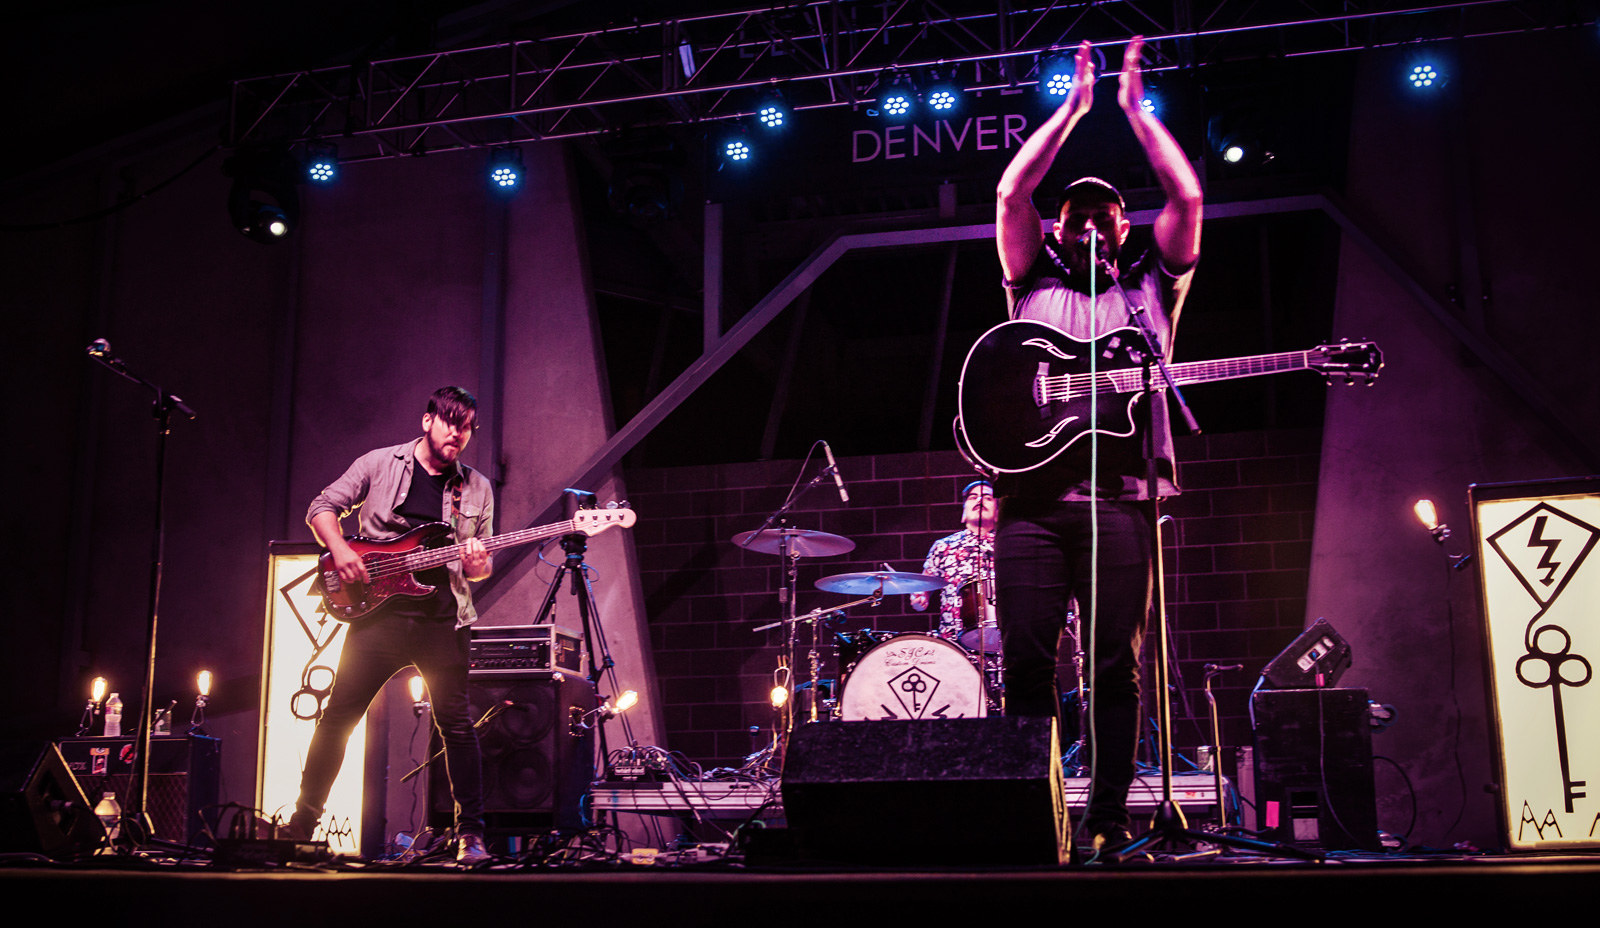 My Body Sings Electric Concert Photos - Levitt Pavilion Denver